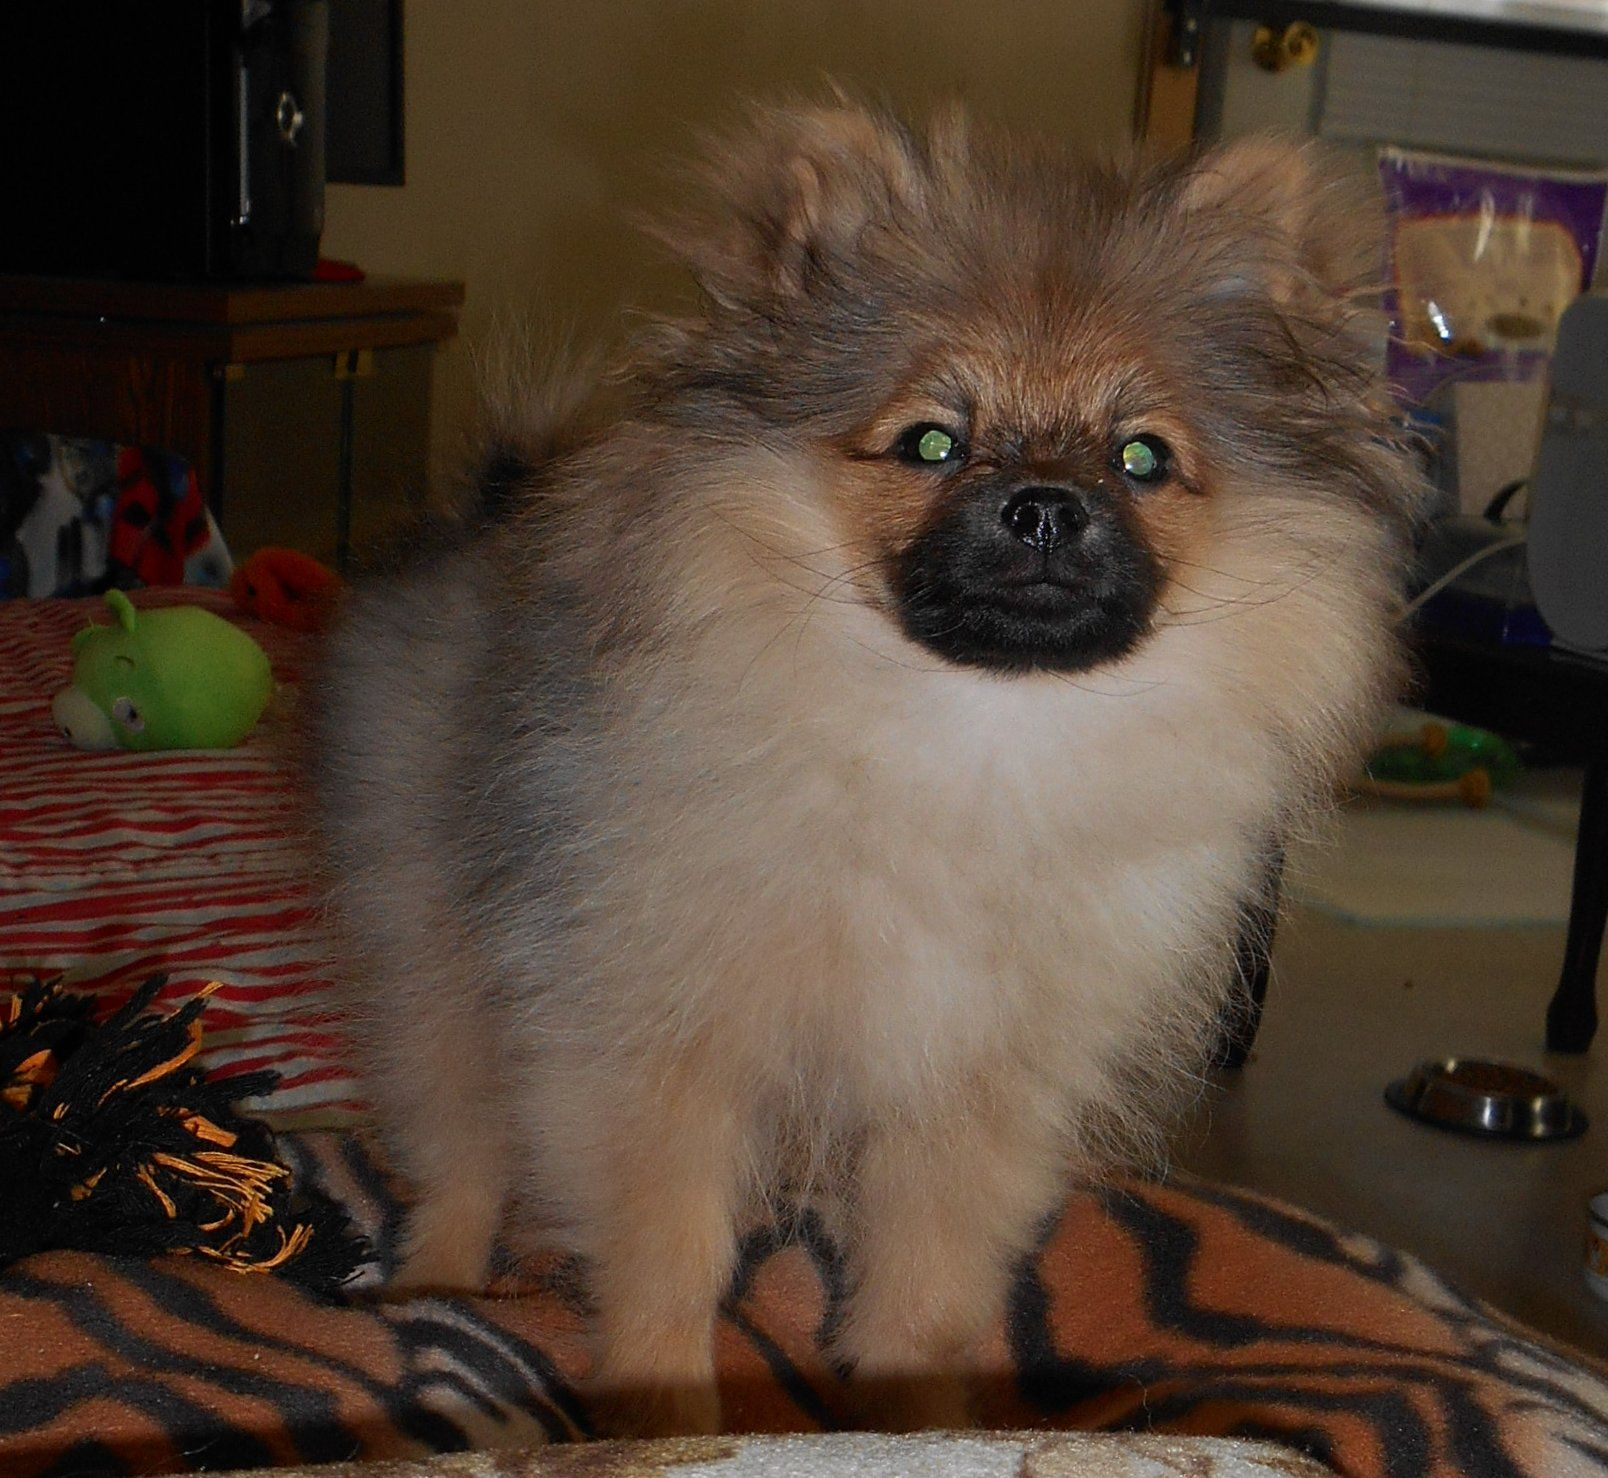 Corduroy The Pomeranian Puppy With An Evil Look About Him Lol